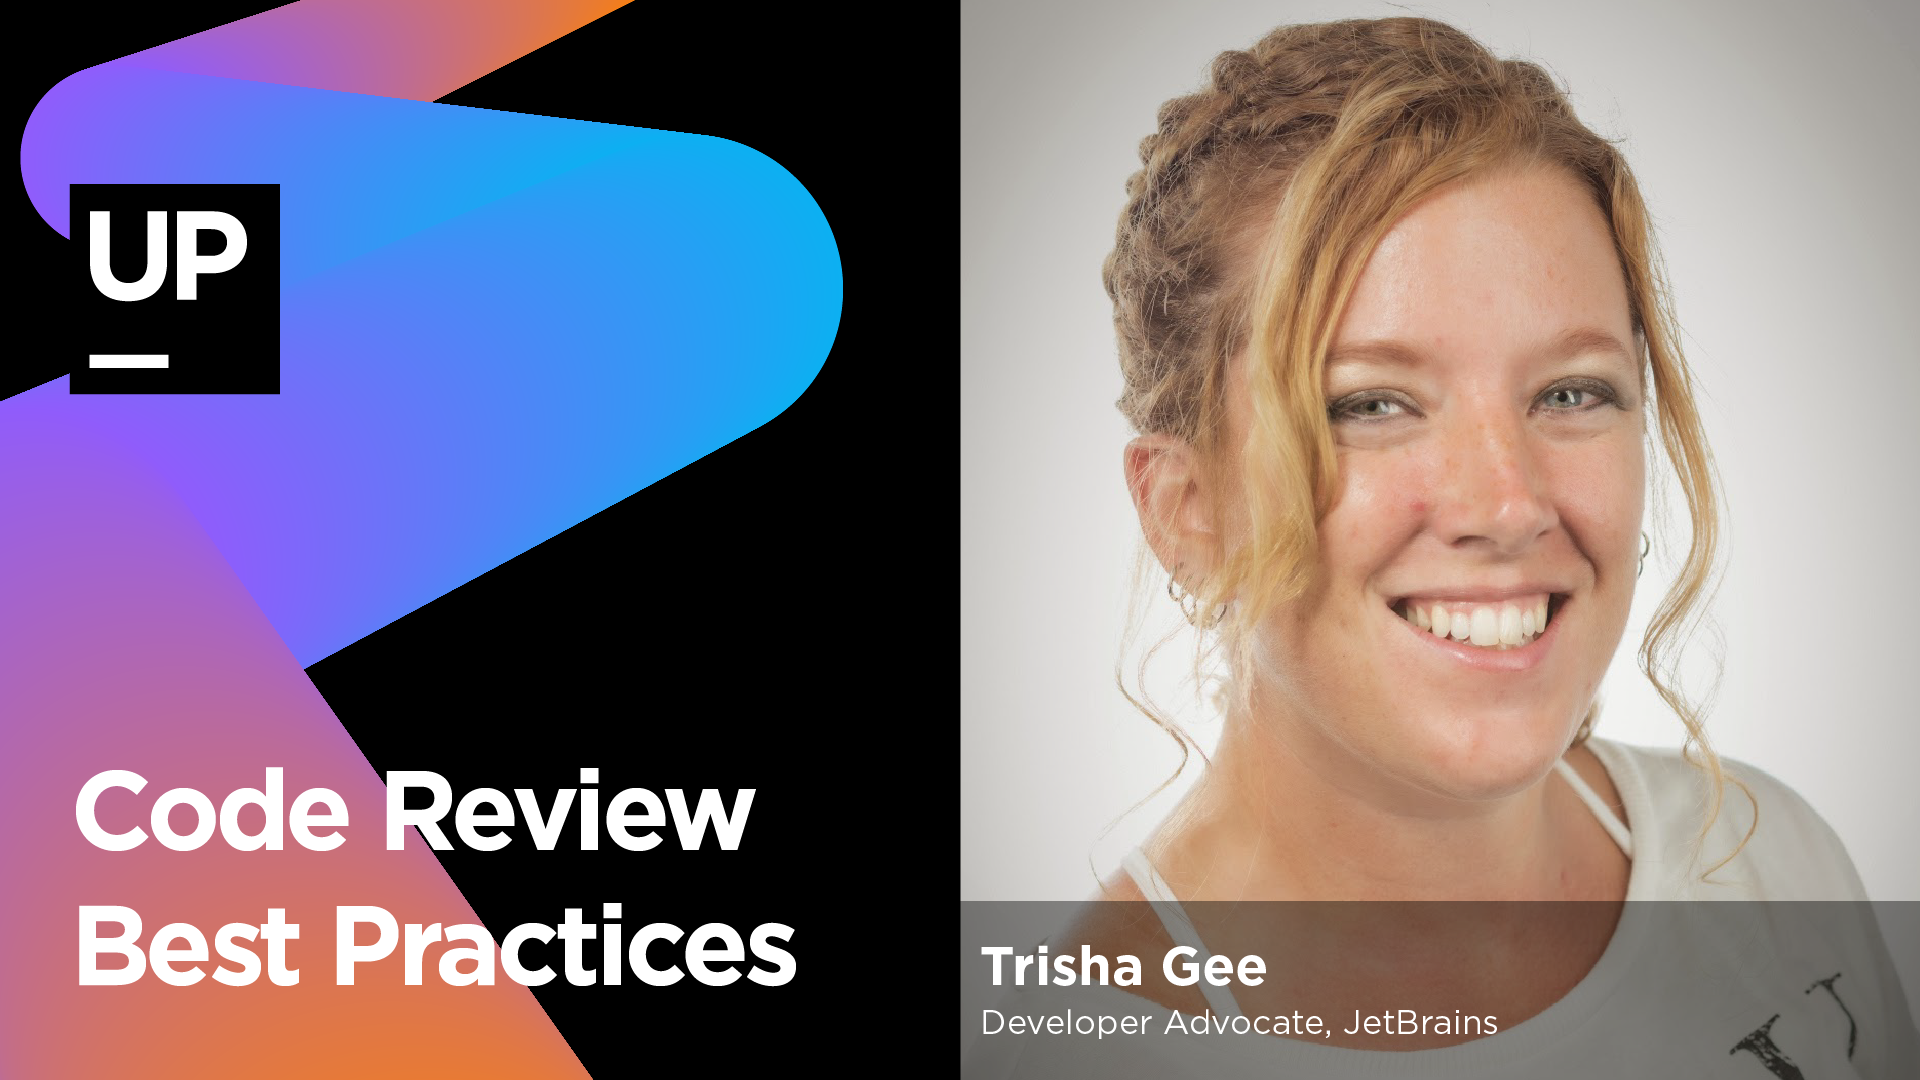 Upsource webinar: Code Review Best Practices